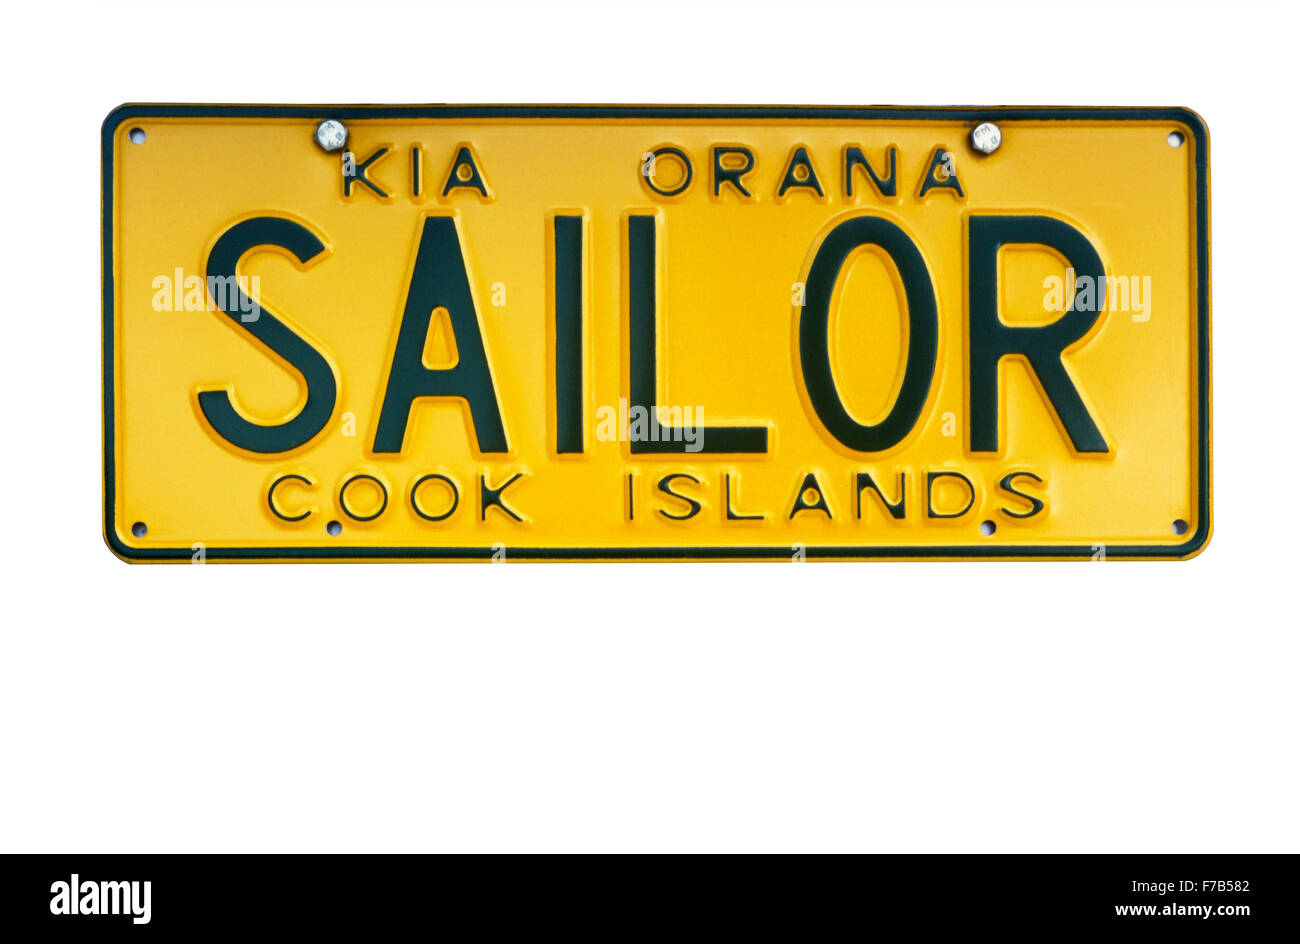 Cook Islands Sailor license plate with 'Kia Orana' a greeting in Maori language - Stock Image